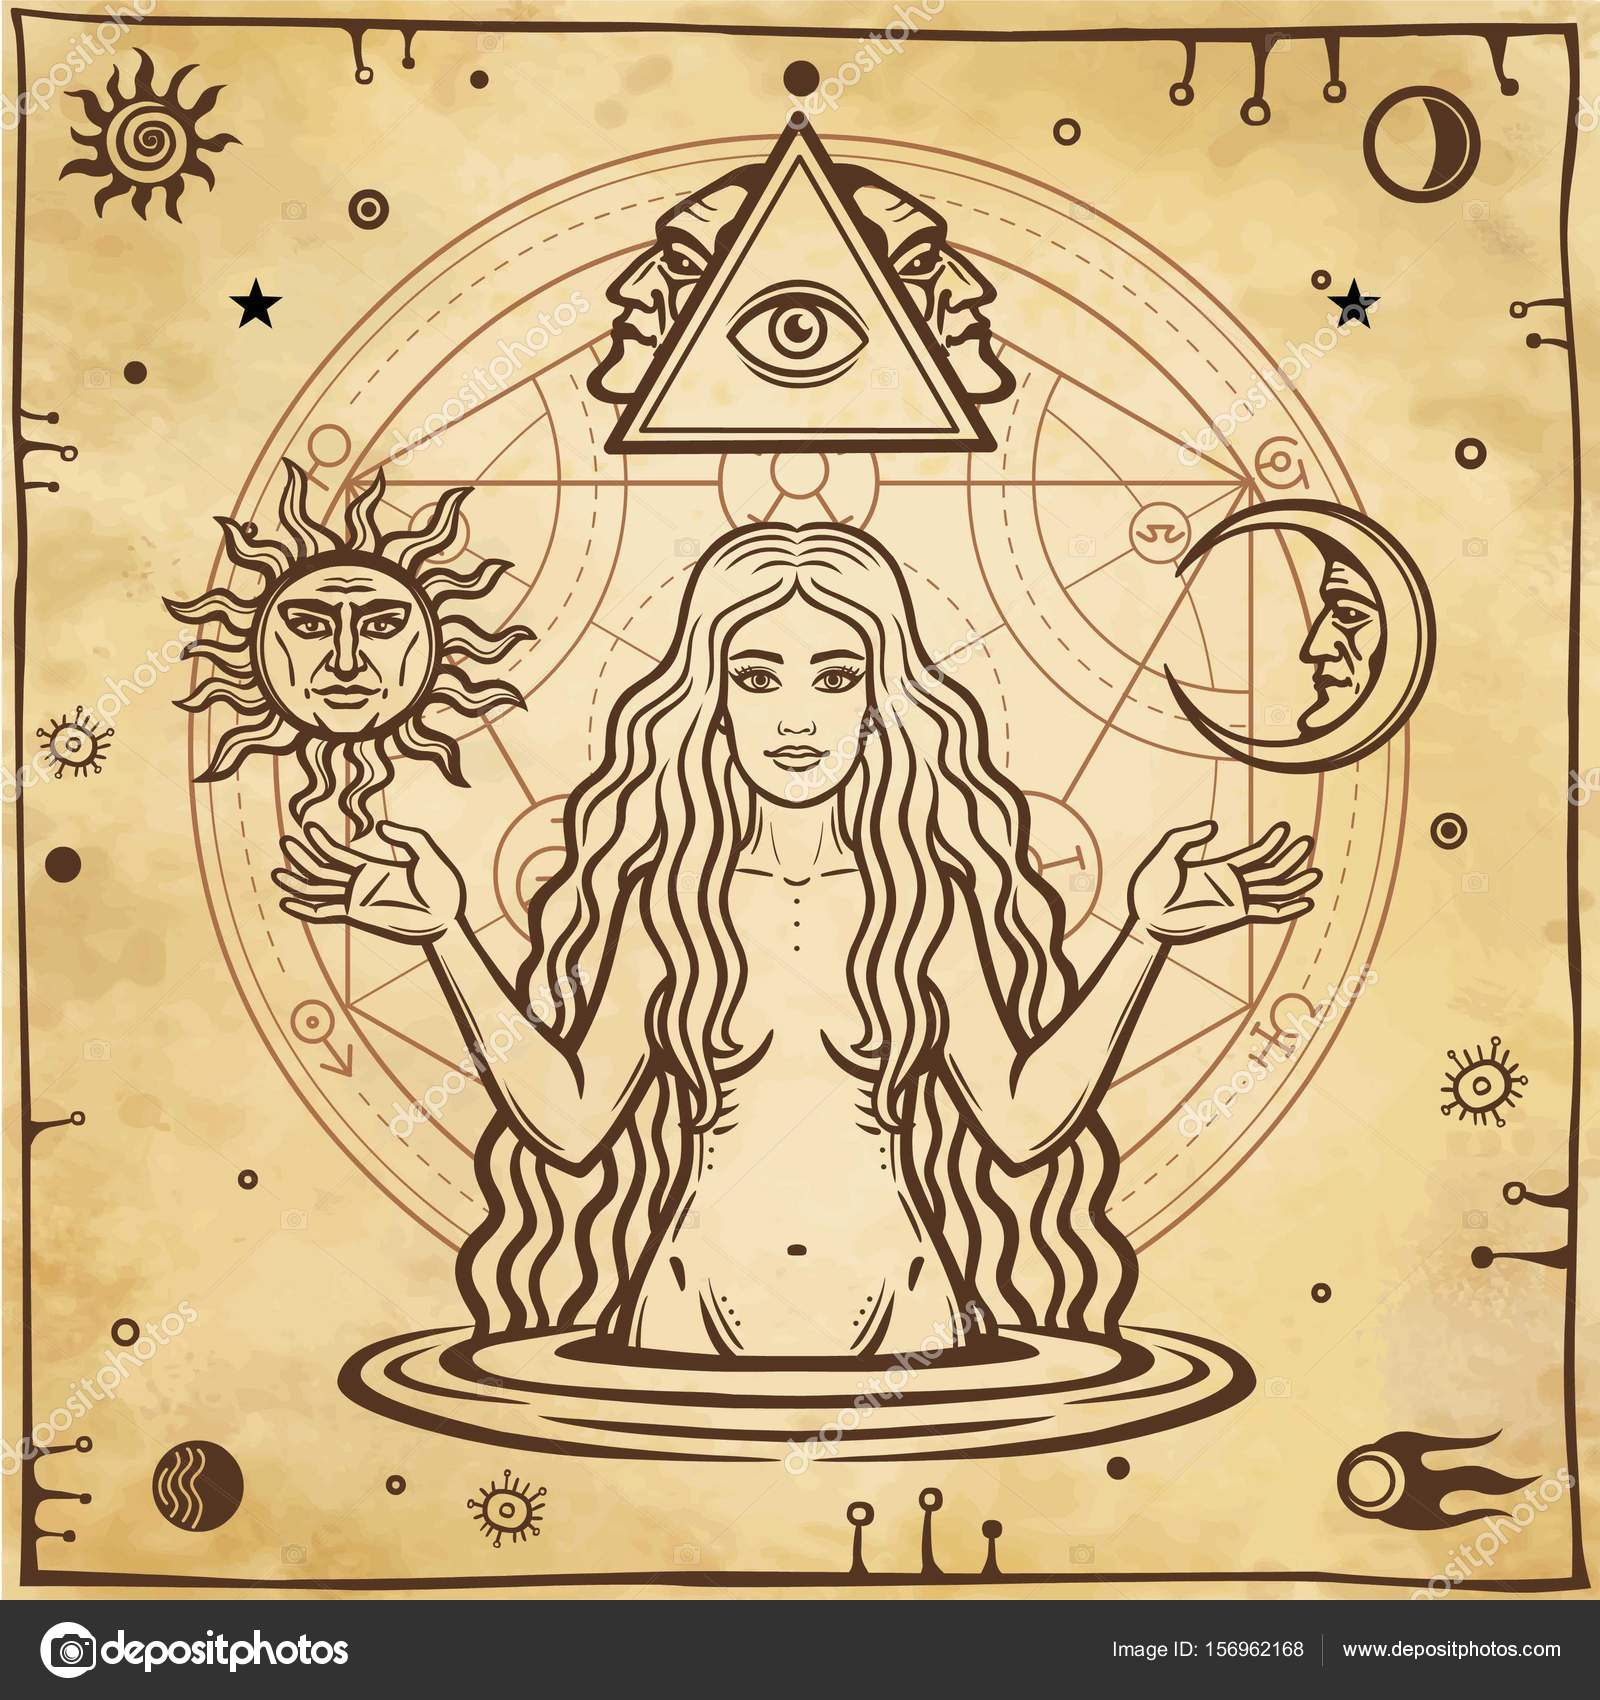 Alchemical drawing young beautiful woman eves image fertility alchemical drawing young beautiful woman eves image fertility temptation esoteric mystic occultism symbols of the sun and moon biocorpaavc